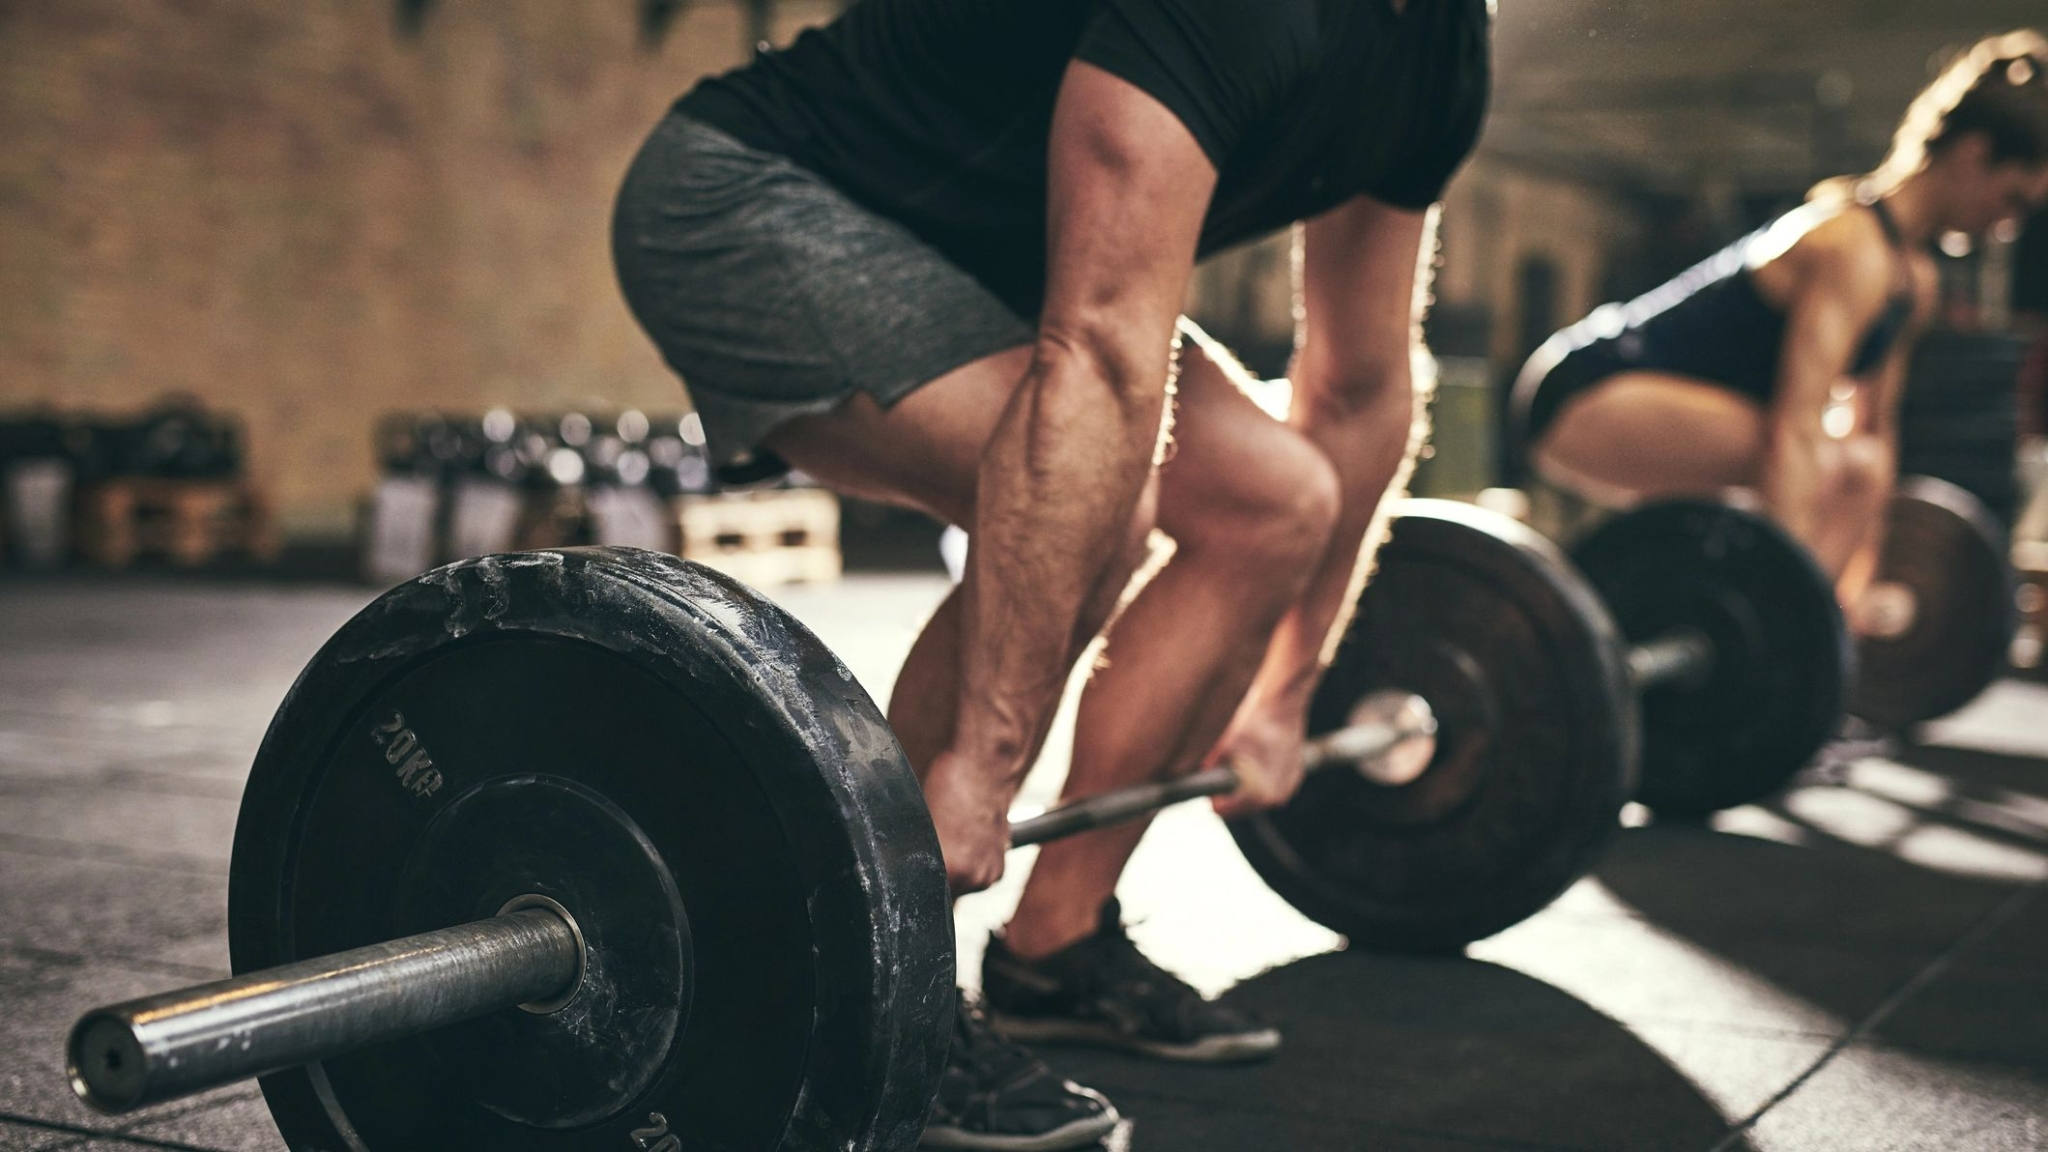 Muscle Power Likely to Help You Live Longer: Study